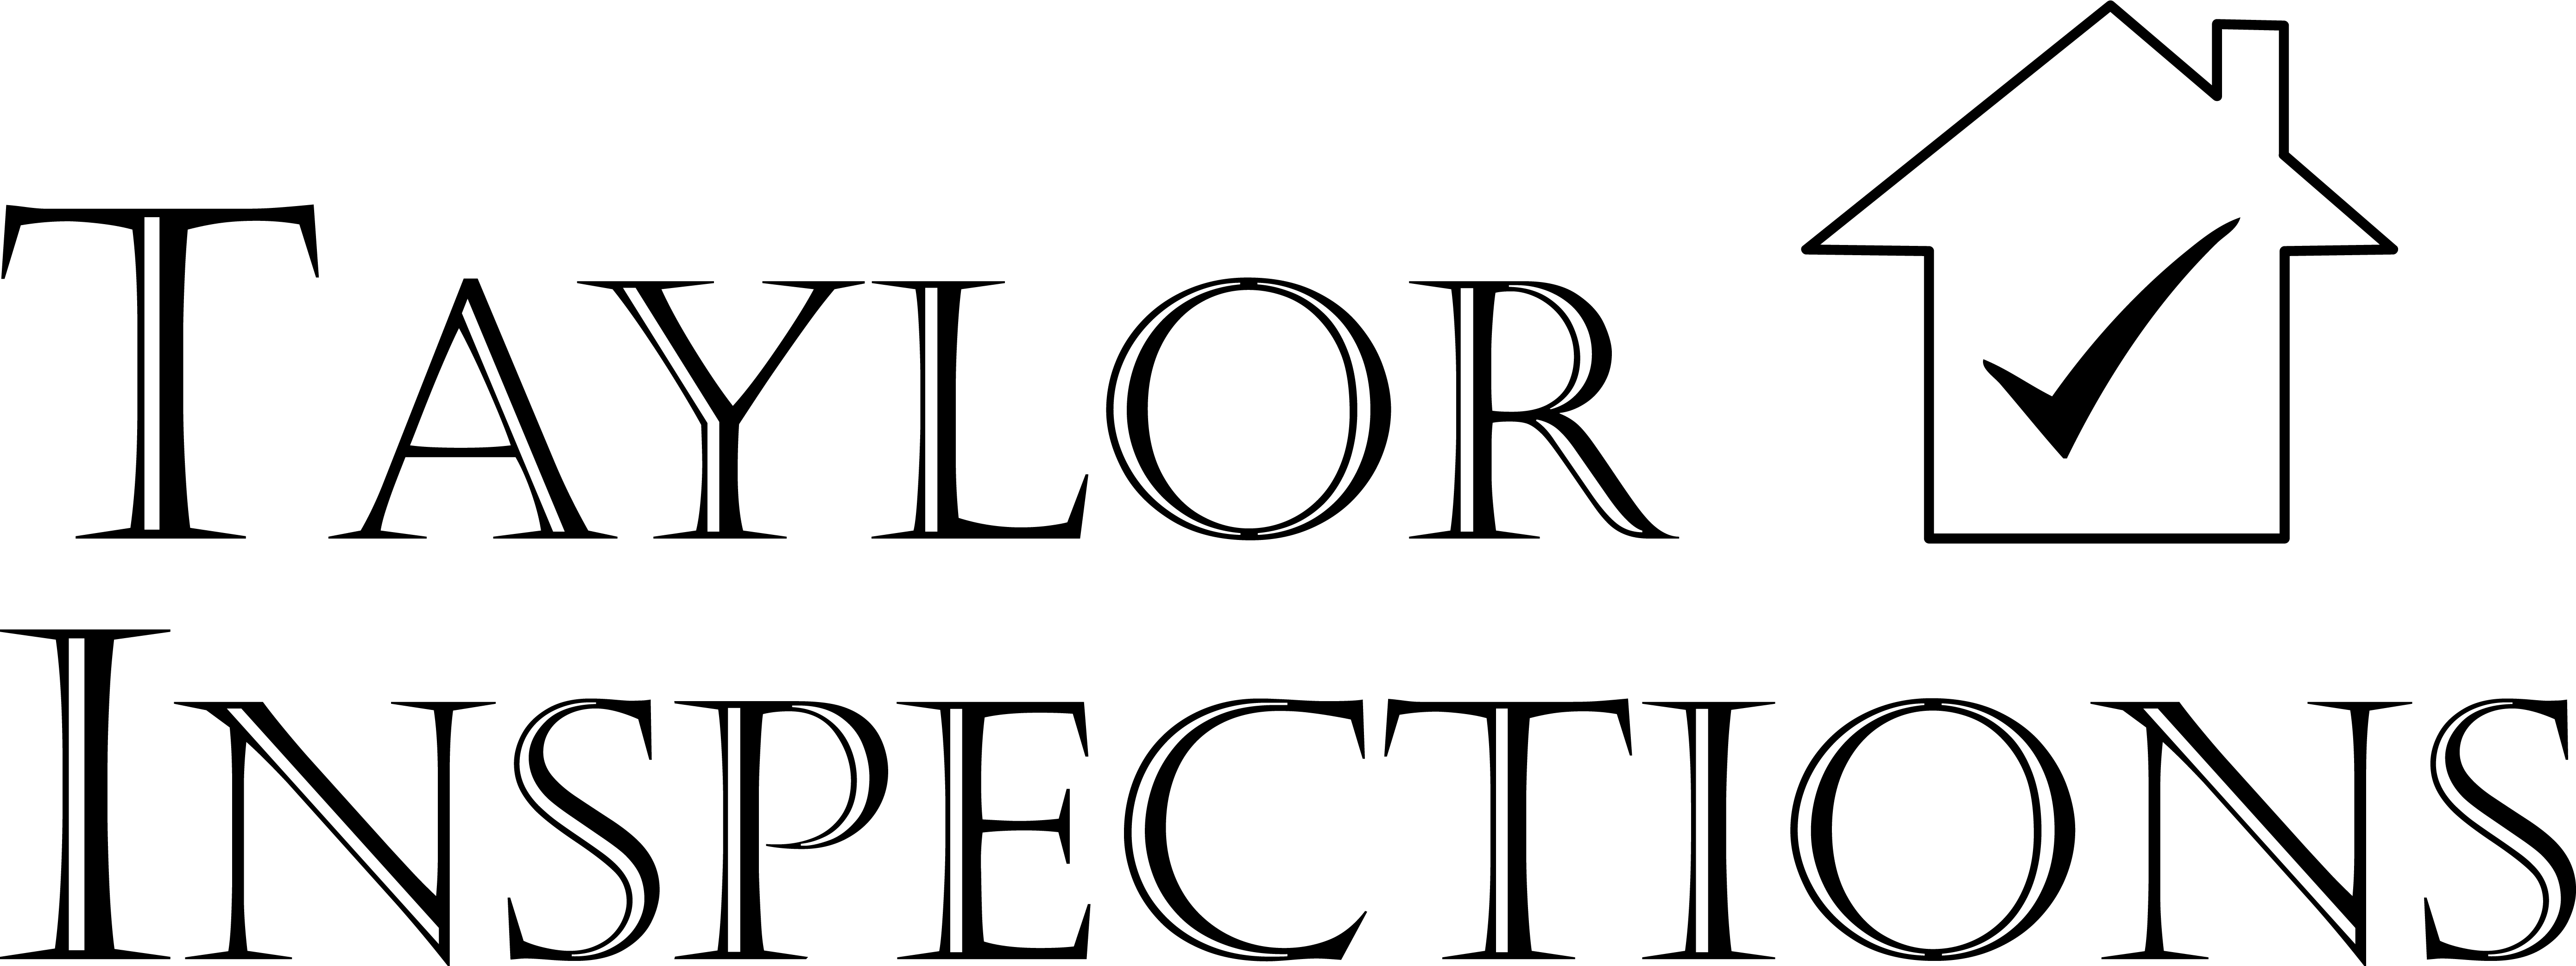 Taylor Inspections